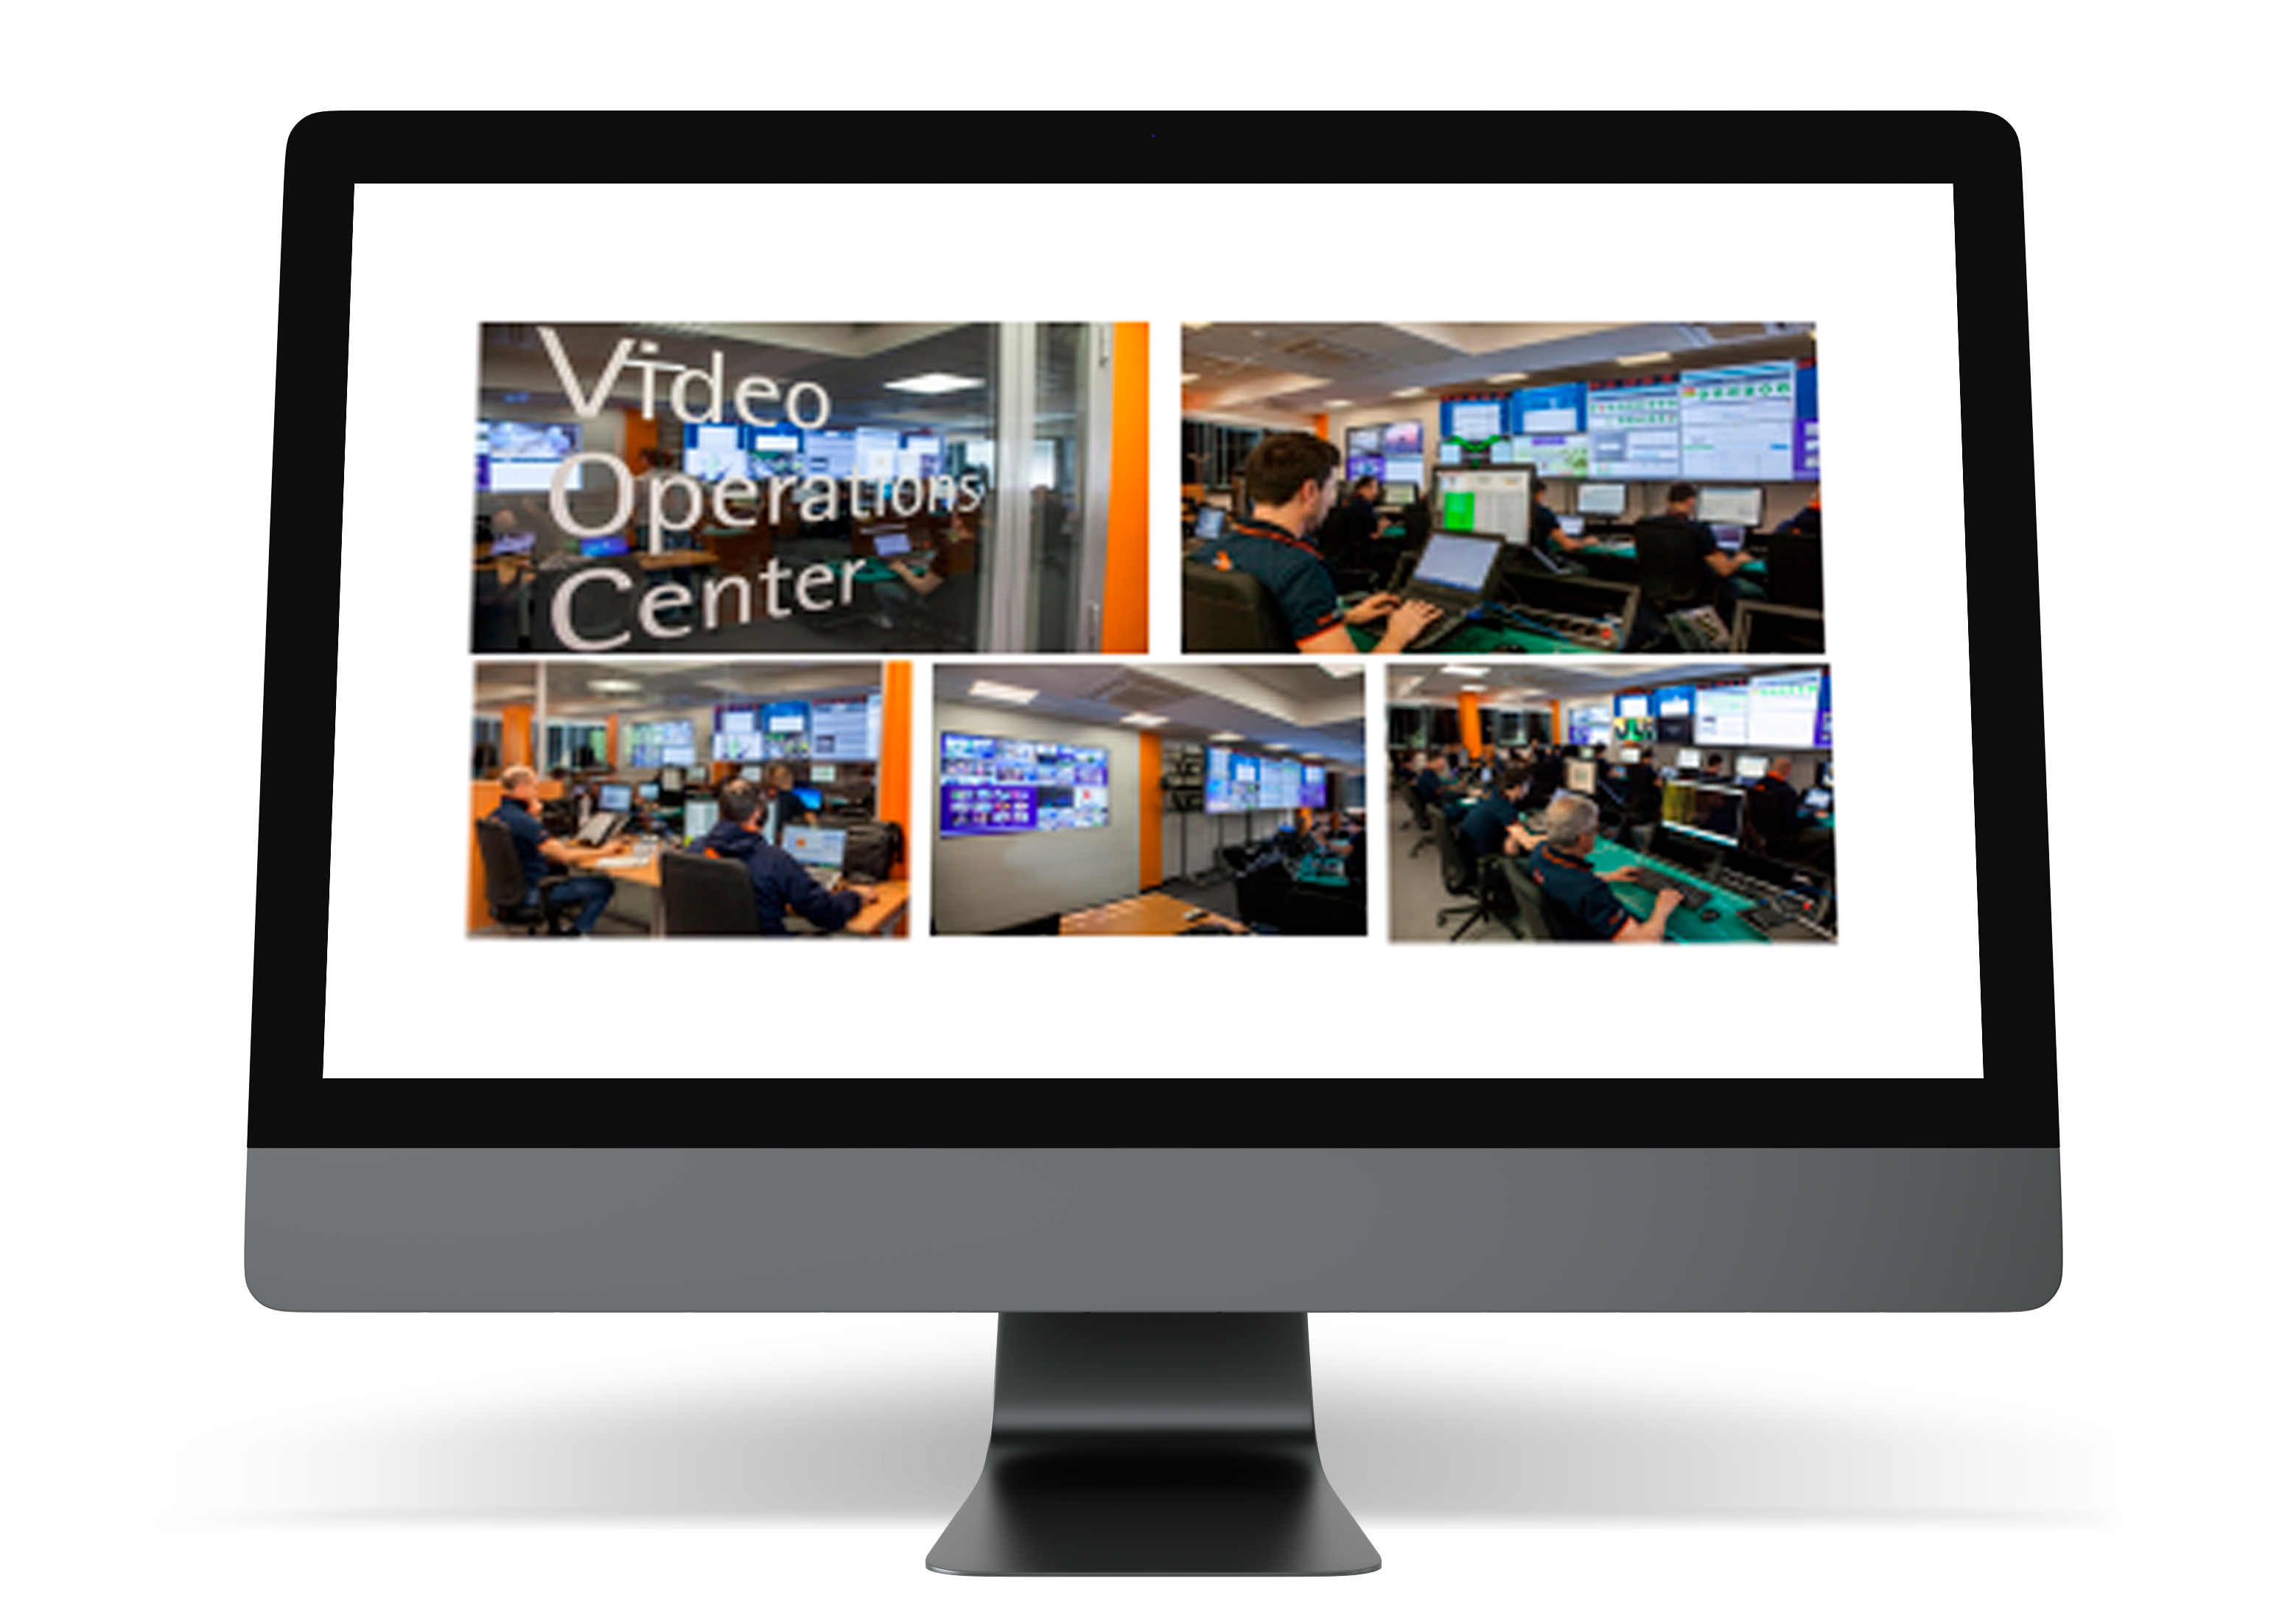 Revolutionizing traditional video operations